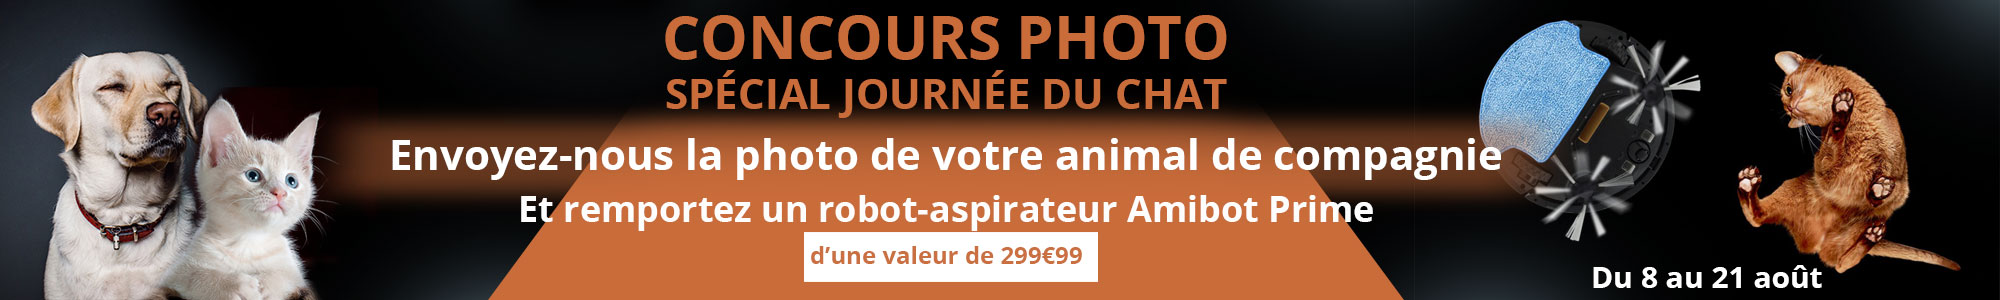 Concours photo chien chat amibot